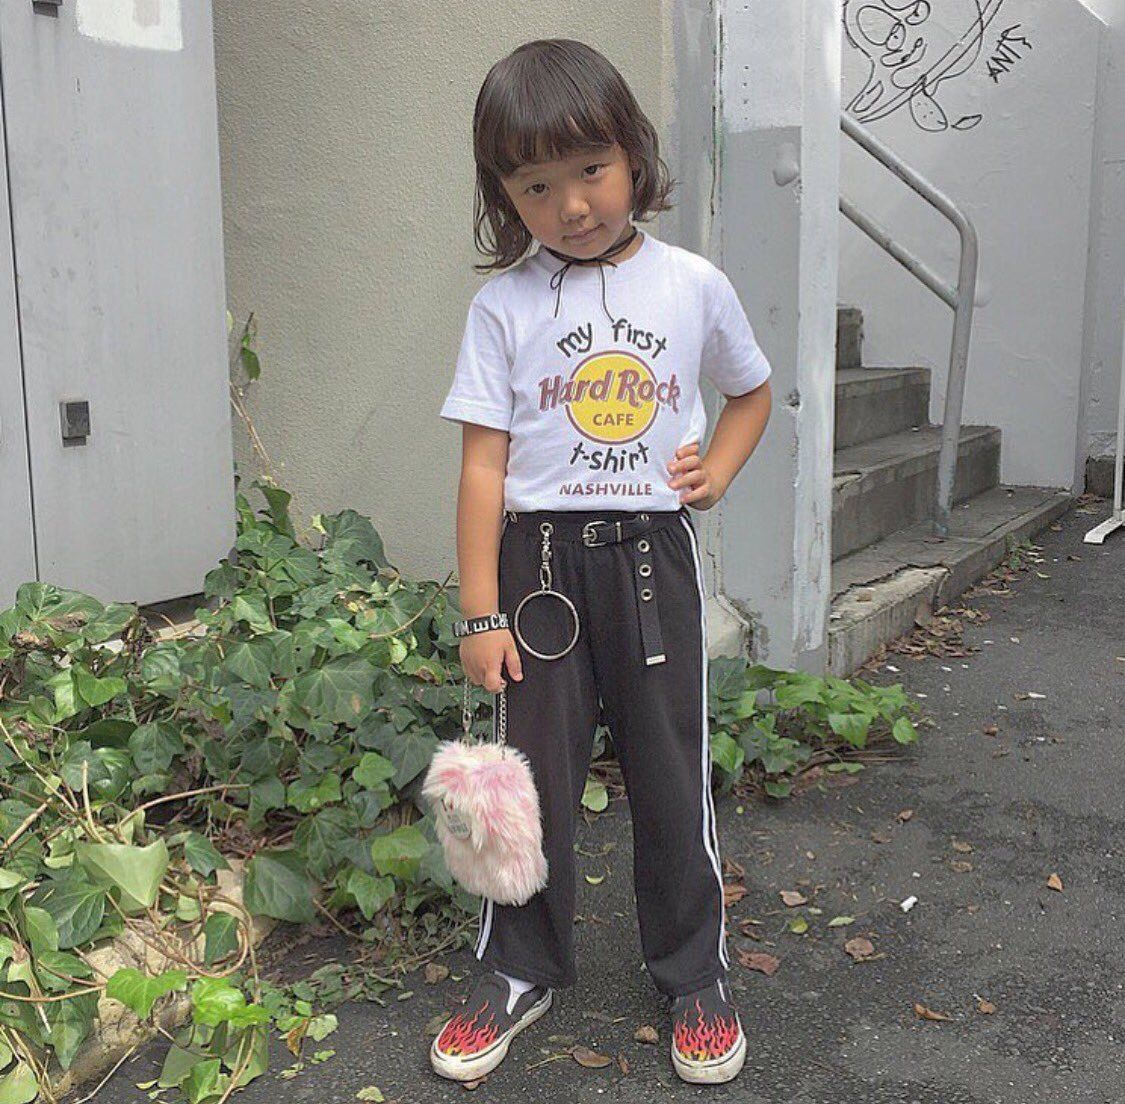 Meet Coco, the 6-Year-Old Japanese Instagram Star Who Even Has VOGUE Taking Notice